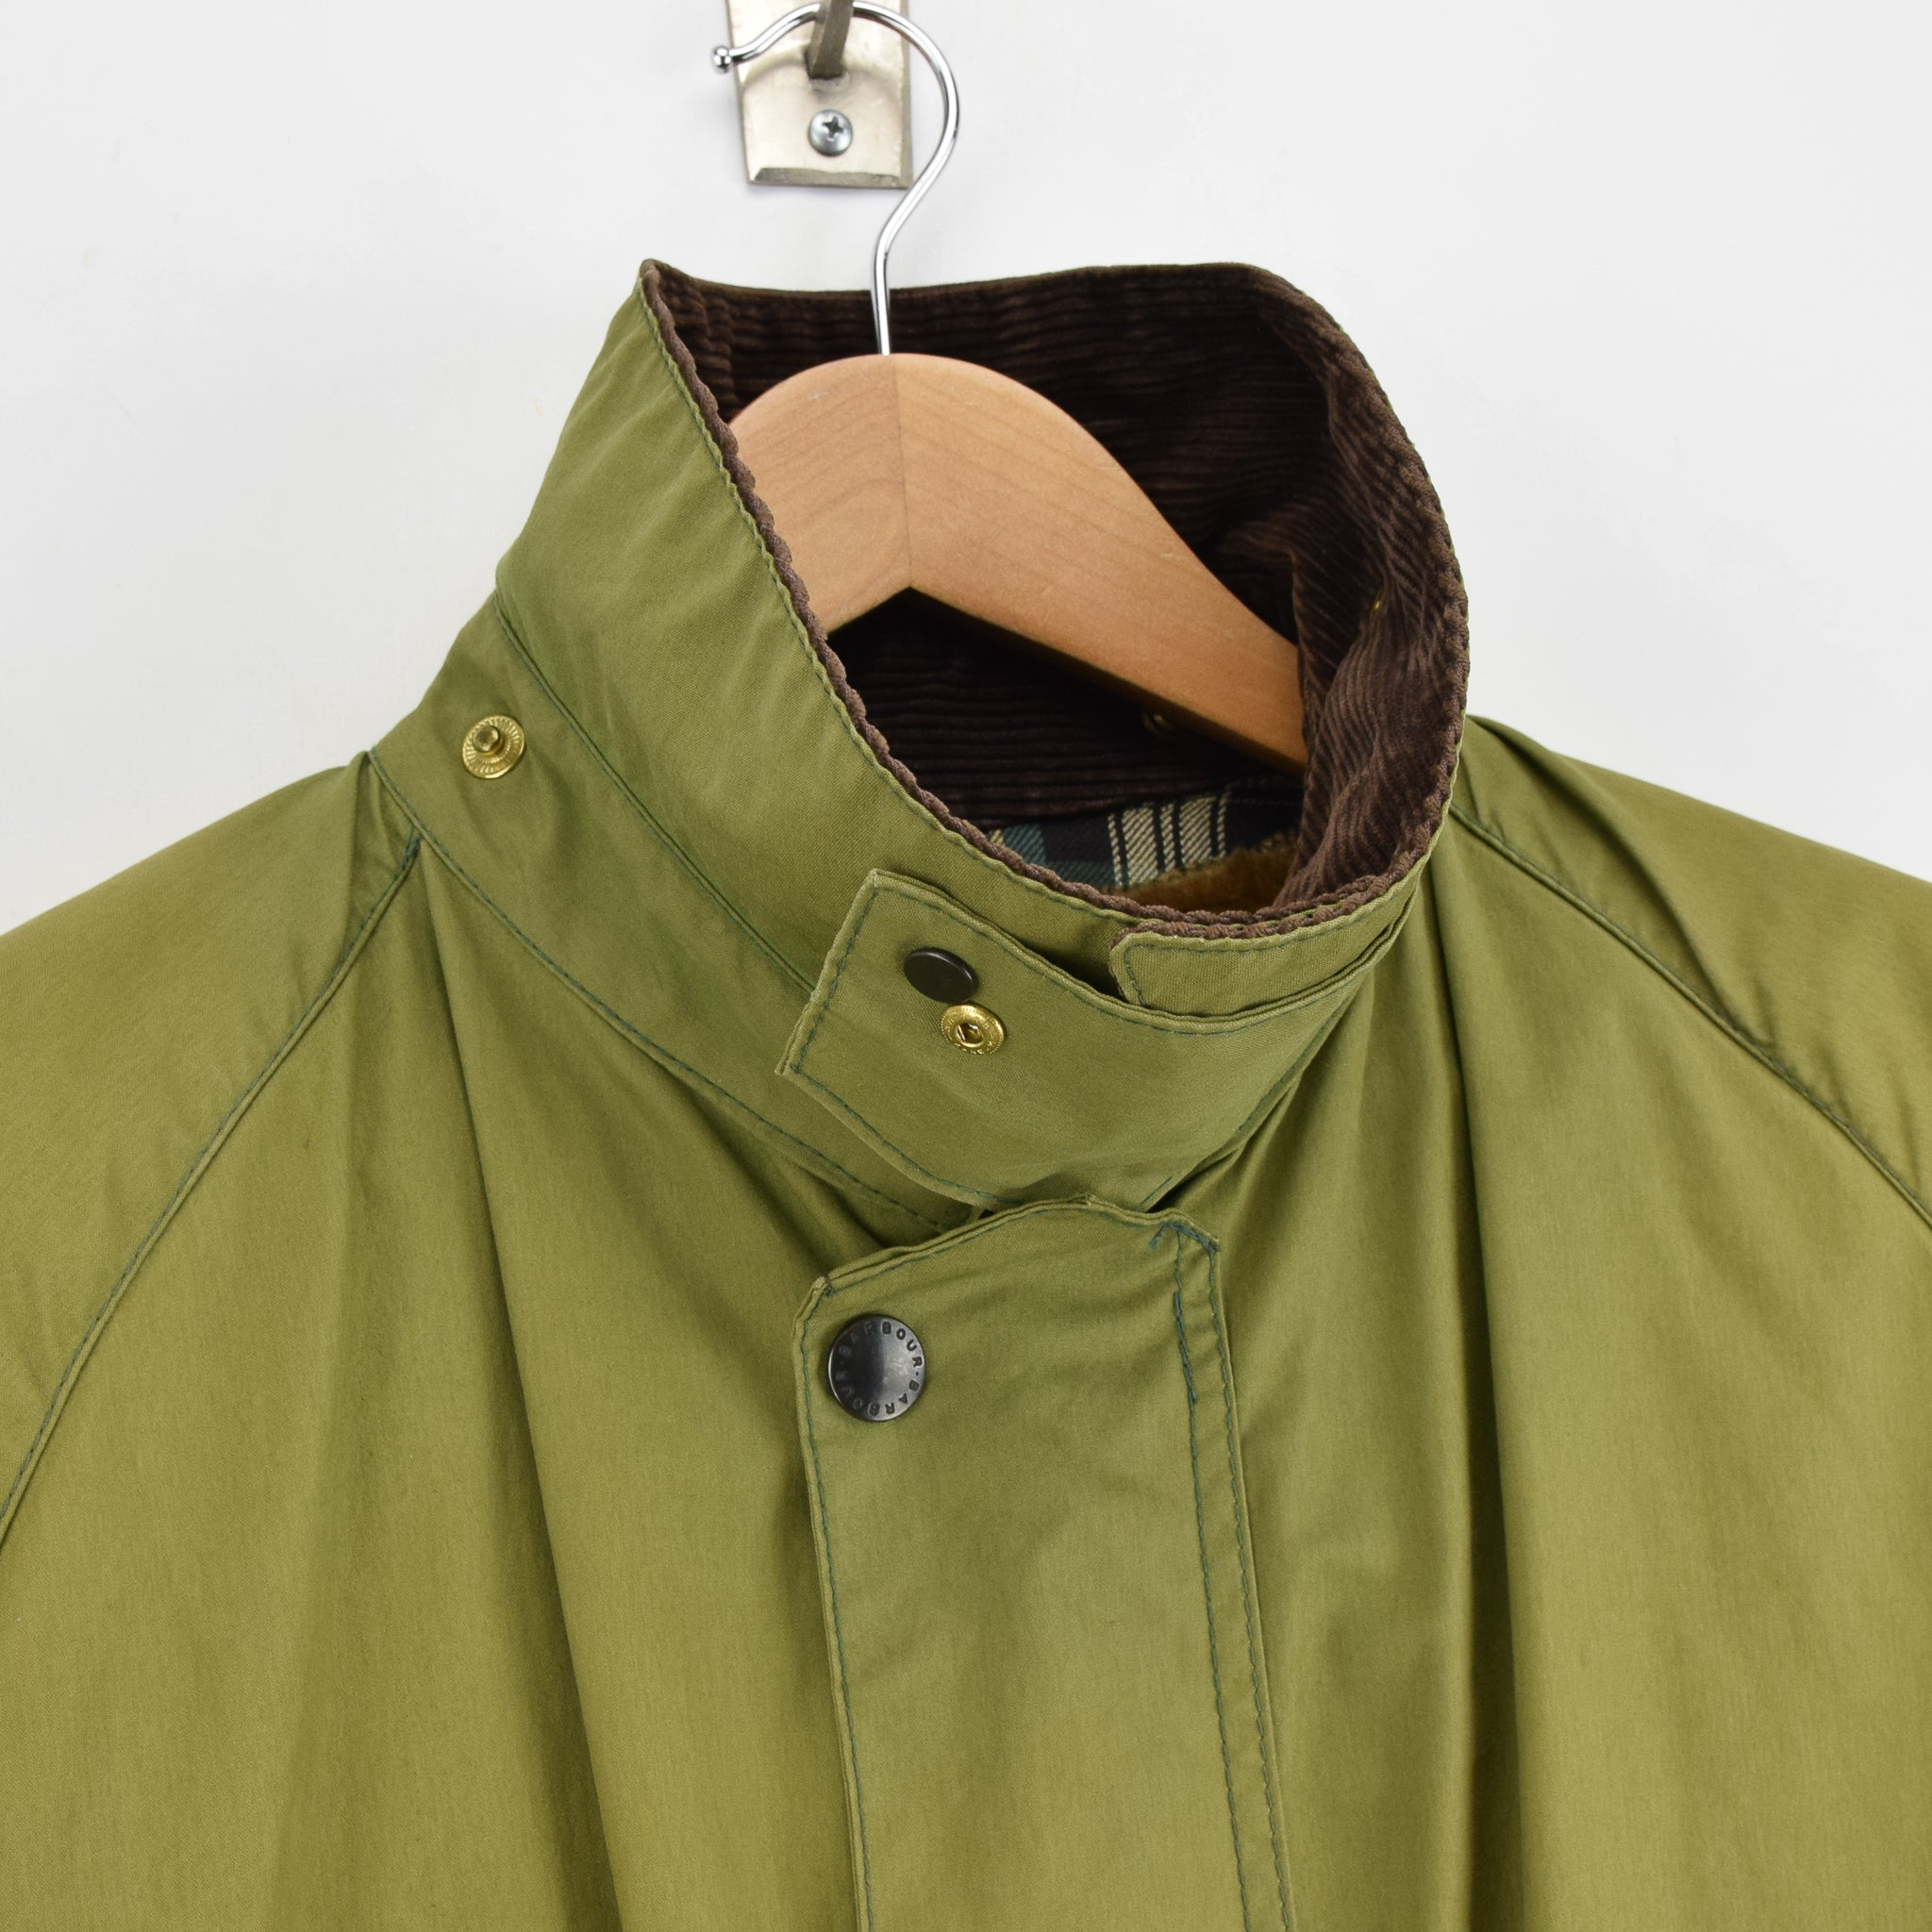 Vintage Barbour Gamefair Green Jacket Coat Made In England L / XL collar